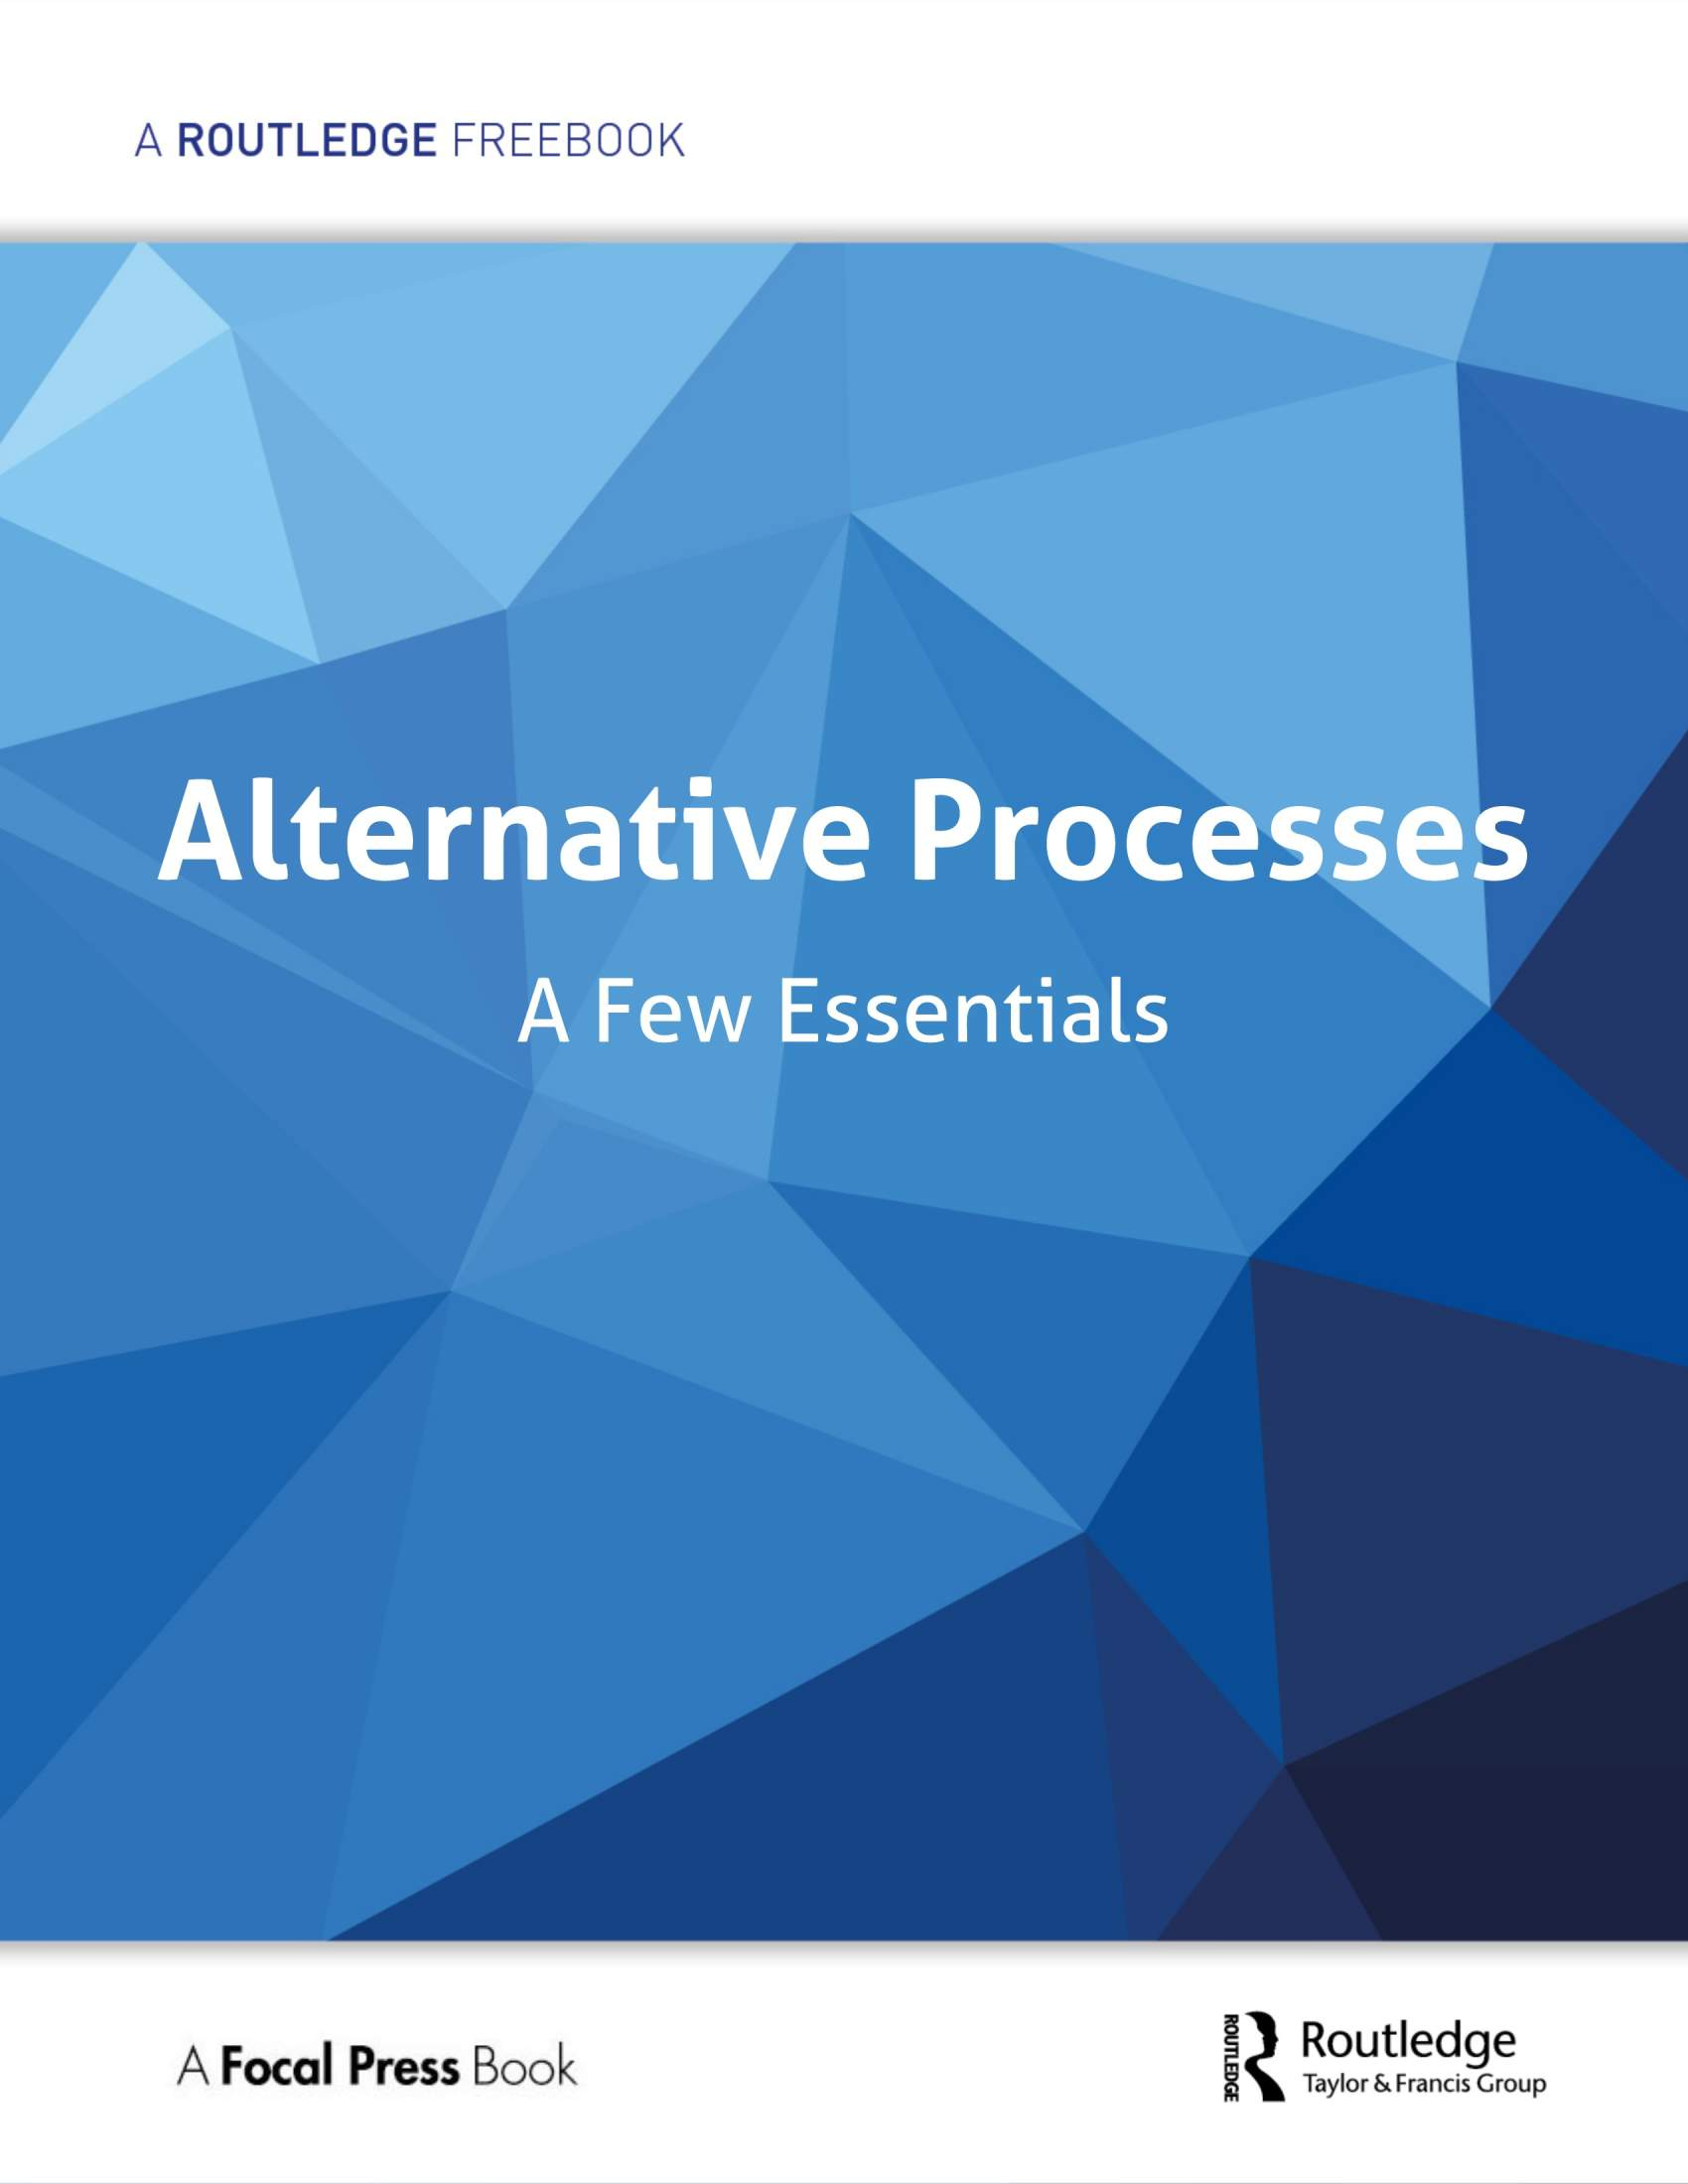 Alternative Processes: A Few Essentials